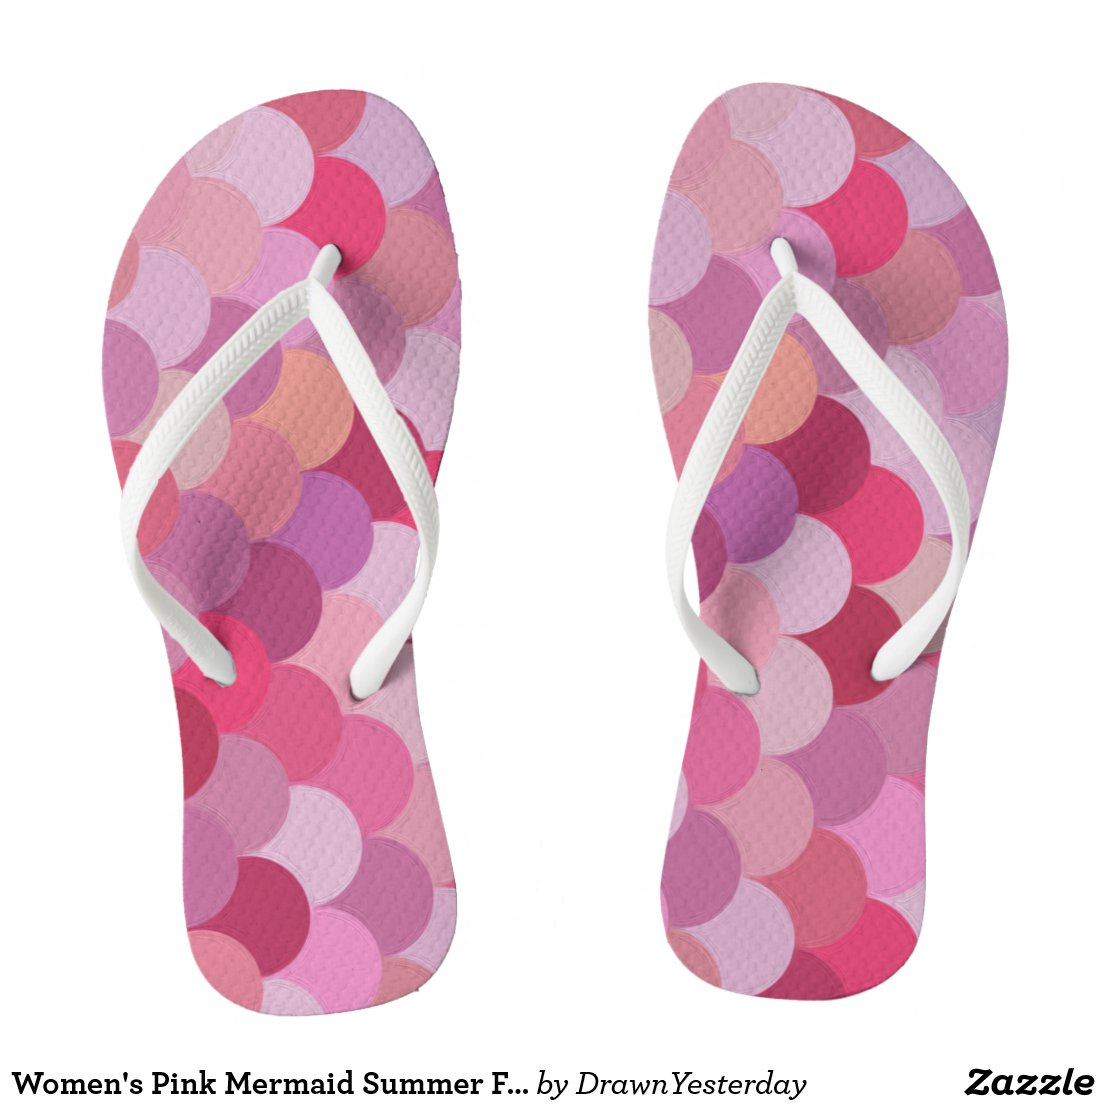 Women's Pink Mermaid Summer Flip Flops